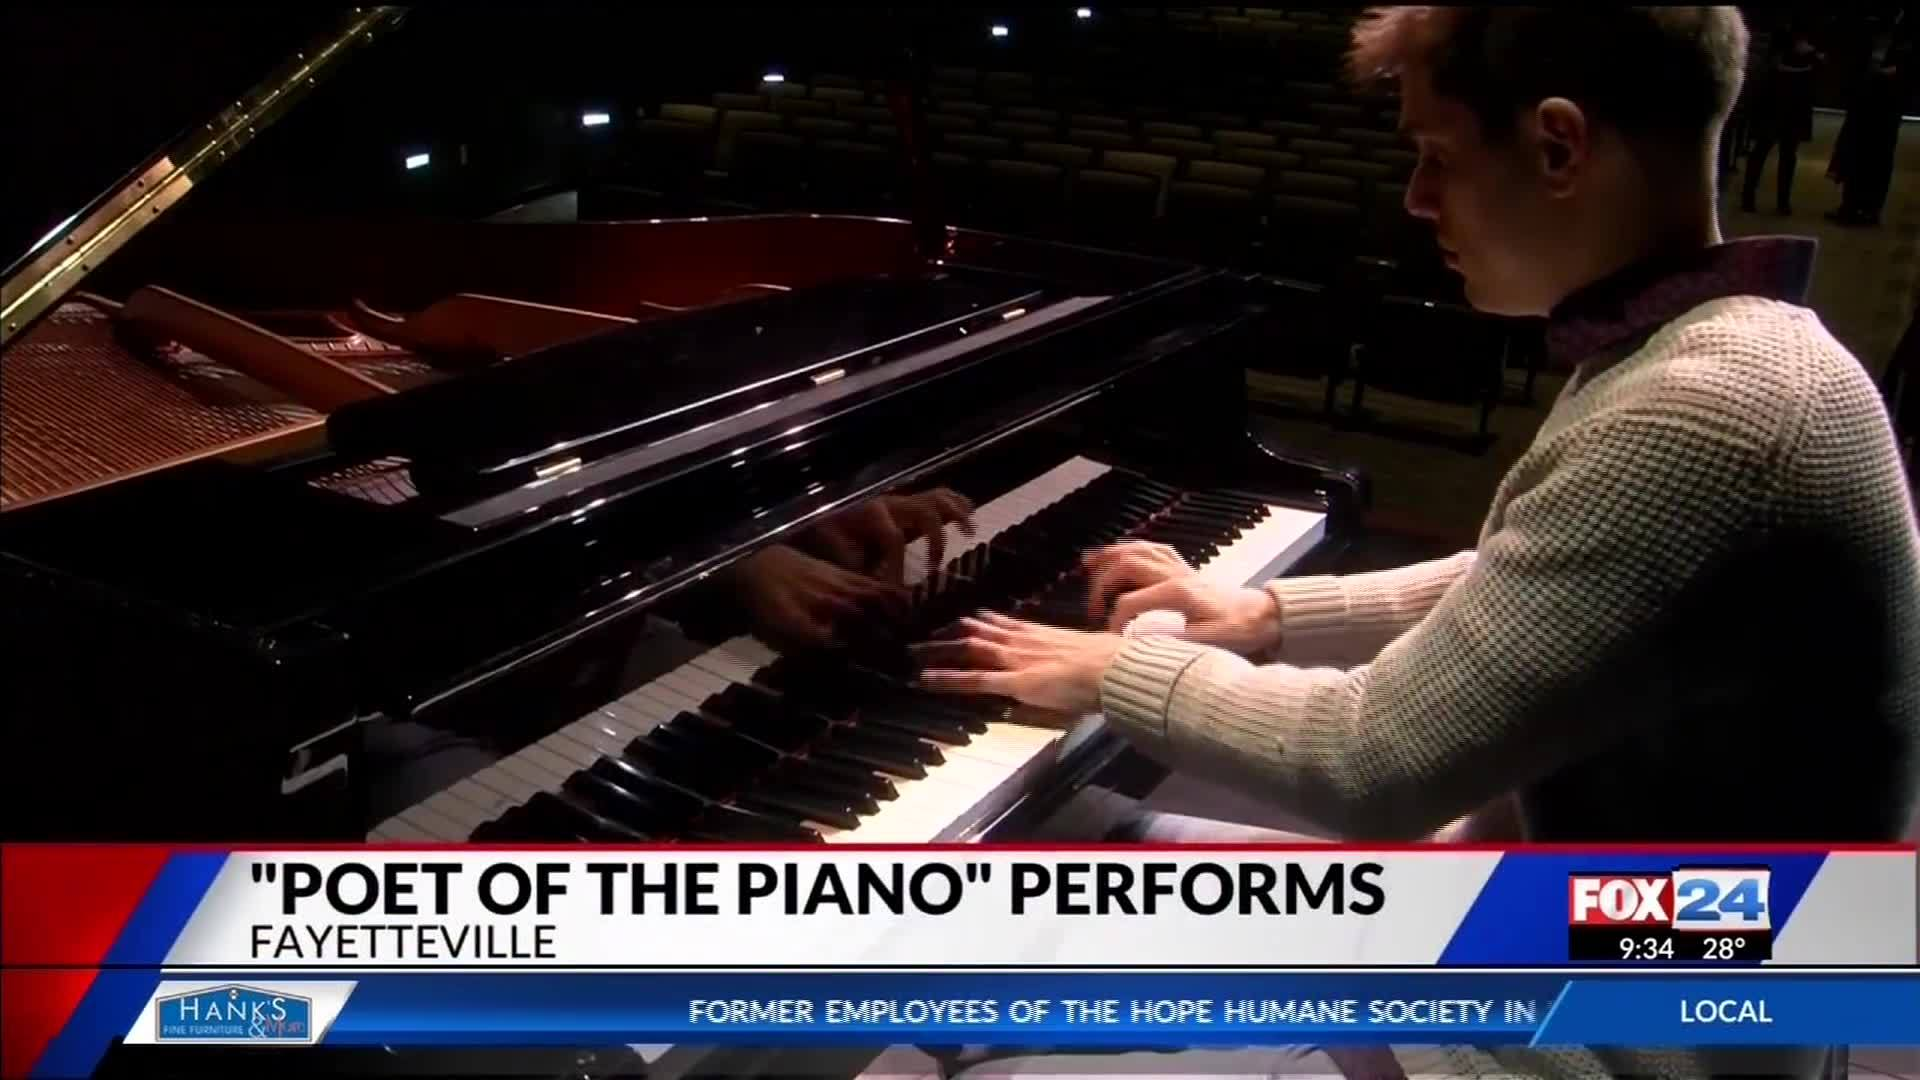 _Poet_of_the_Piano__Performs_for_Fayette_4_20190125043137